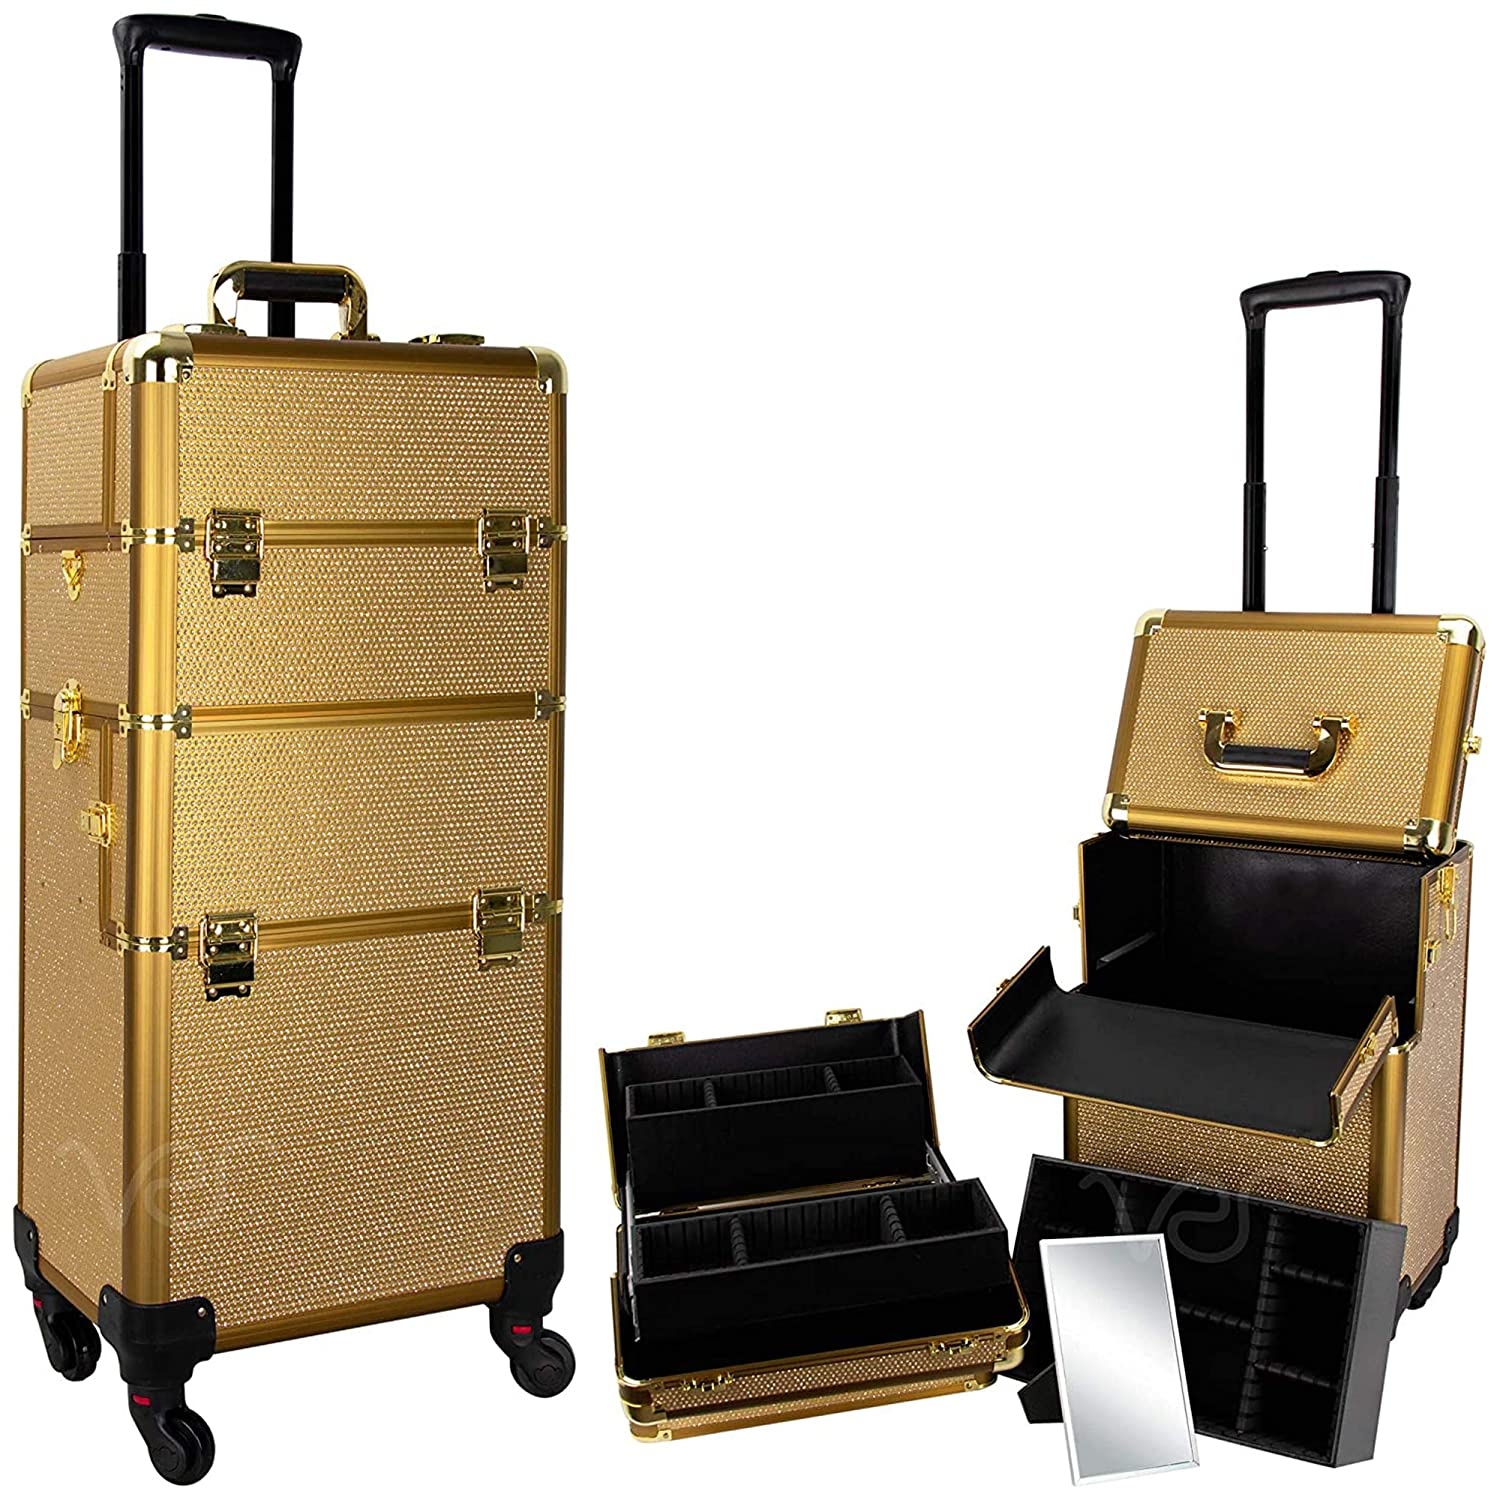 Amazon Com Ver Beauty Professional Rolling Makeup Case Heavy Duty Hair Stylist Makeup Artist Travel Case With Easy Slide And Extendable Trays Gold Krystal Vt002 47 Beauty